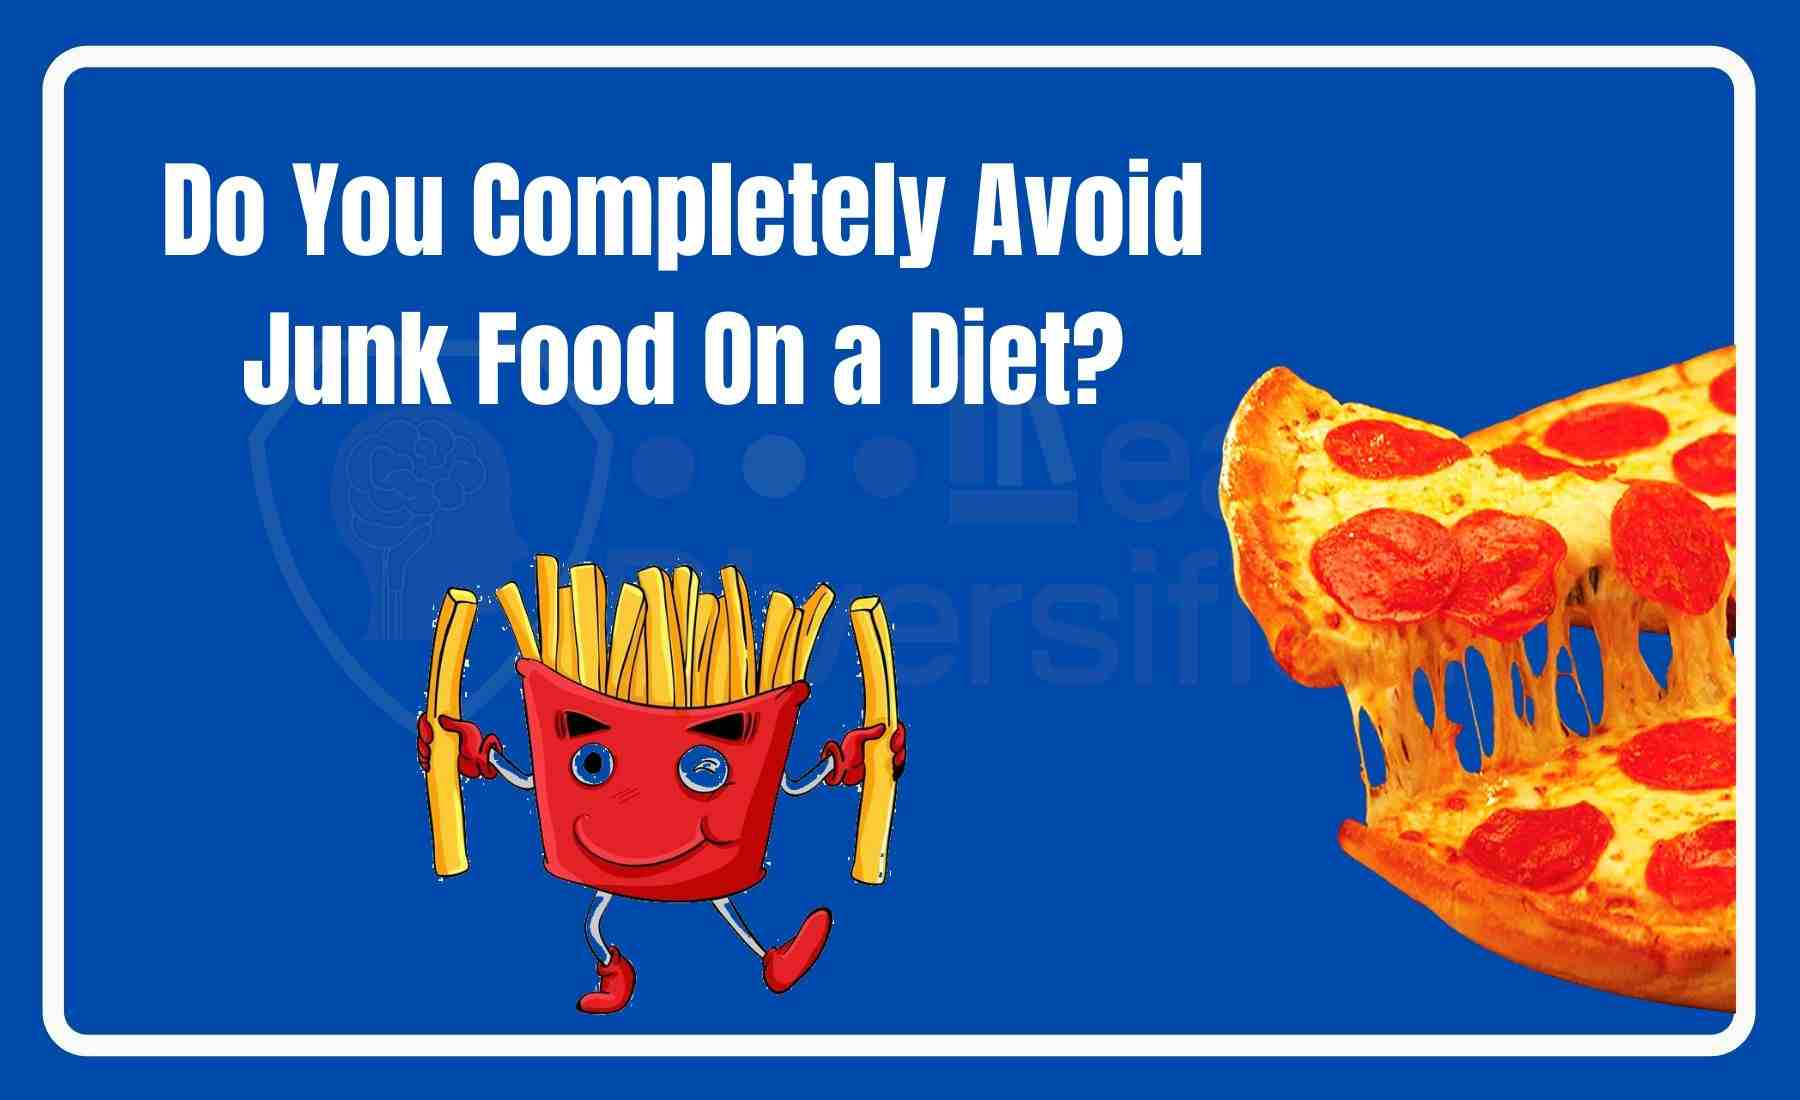 junk food on a diet